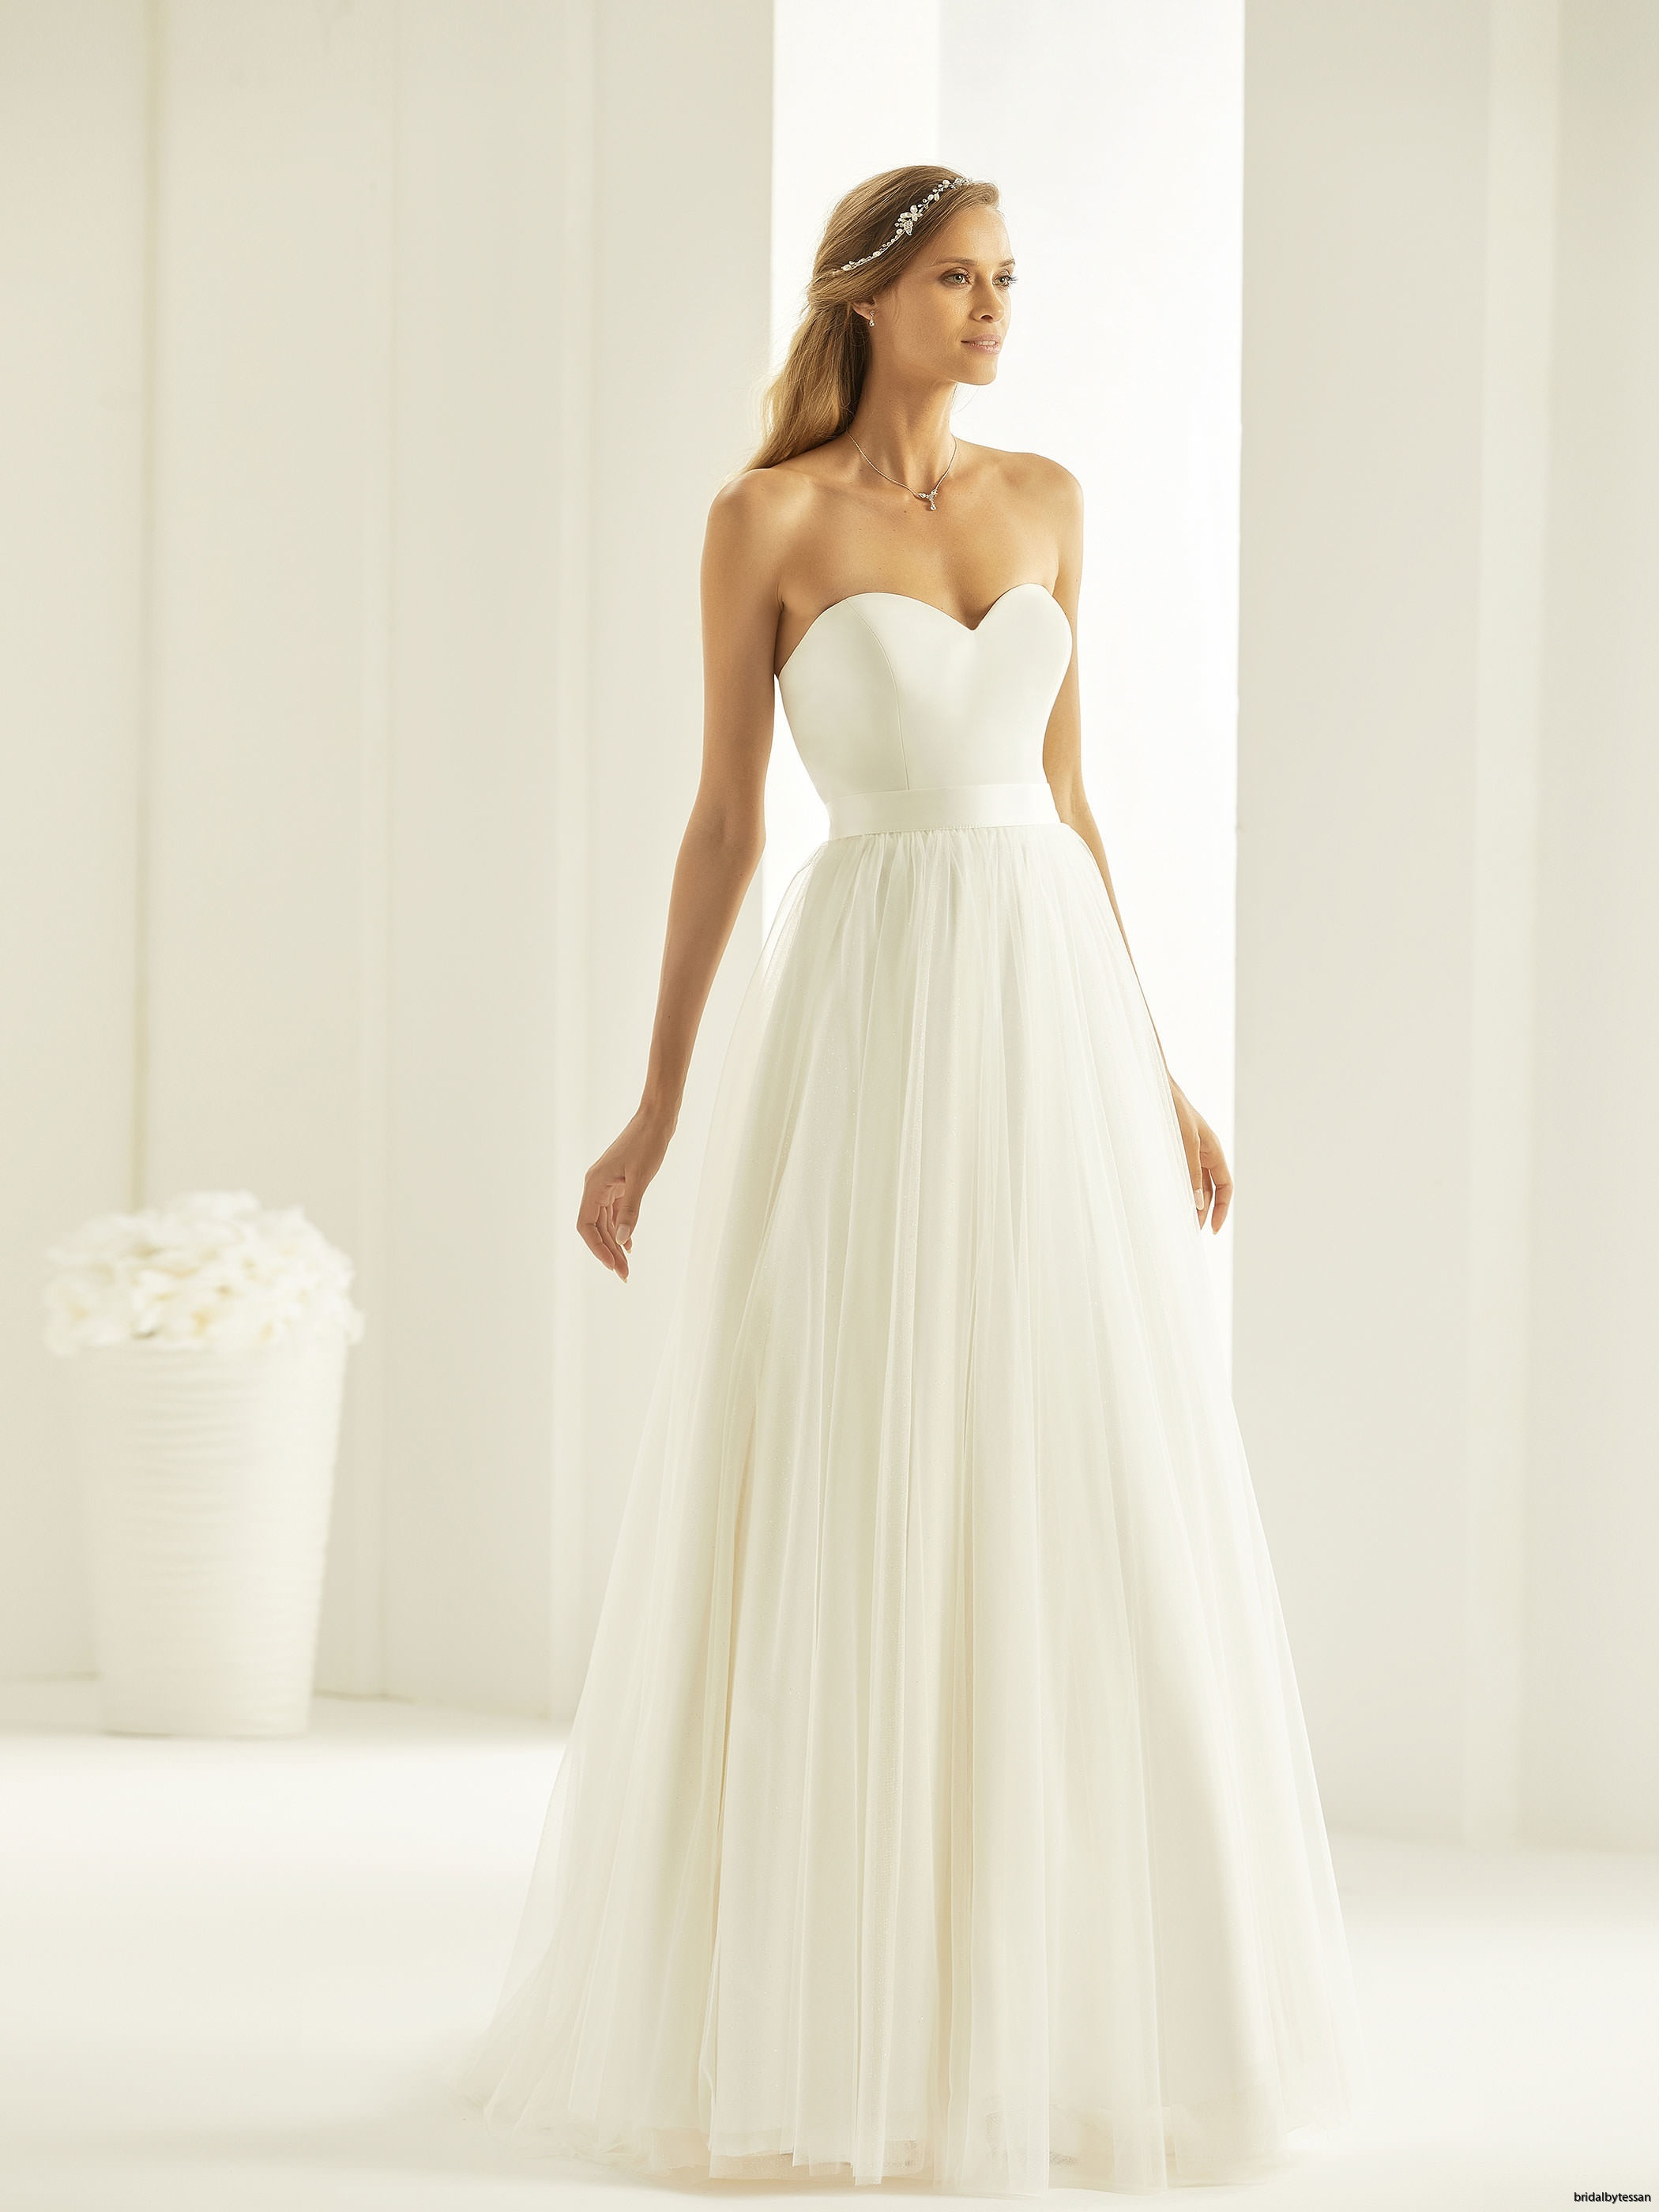 mahalia-_1_bianco-evento-bridal-dress